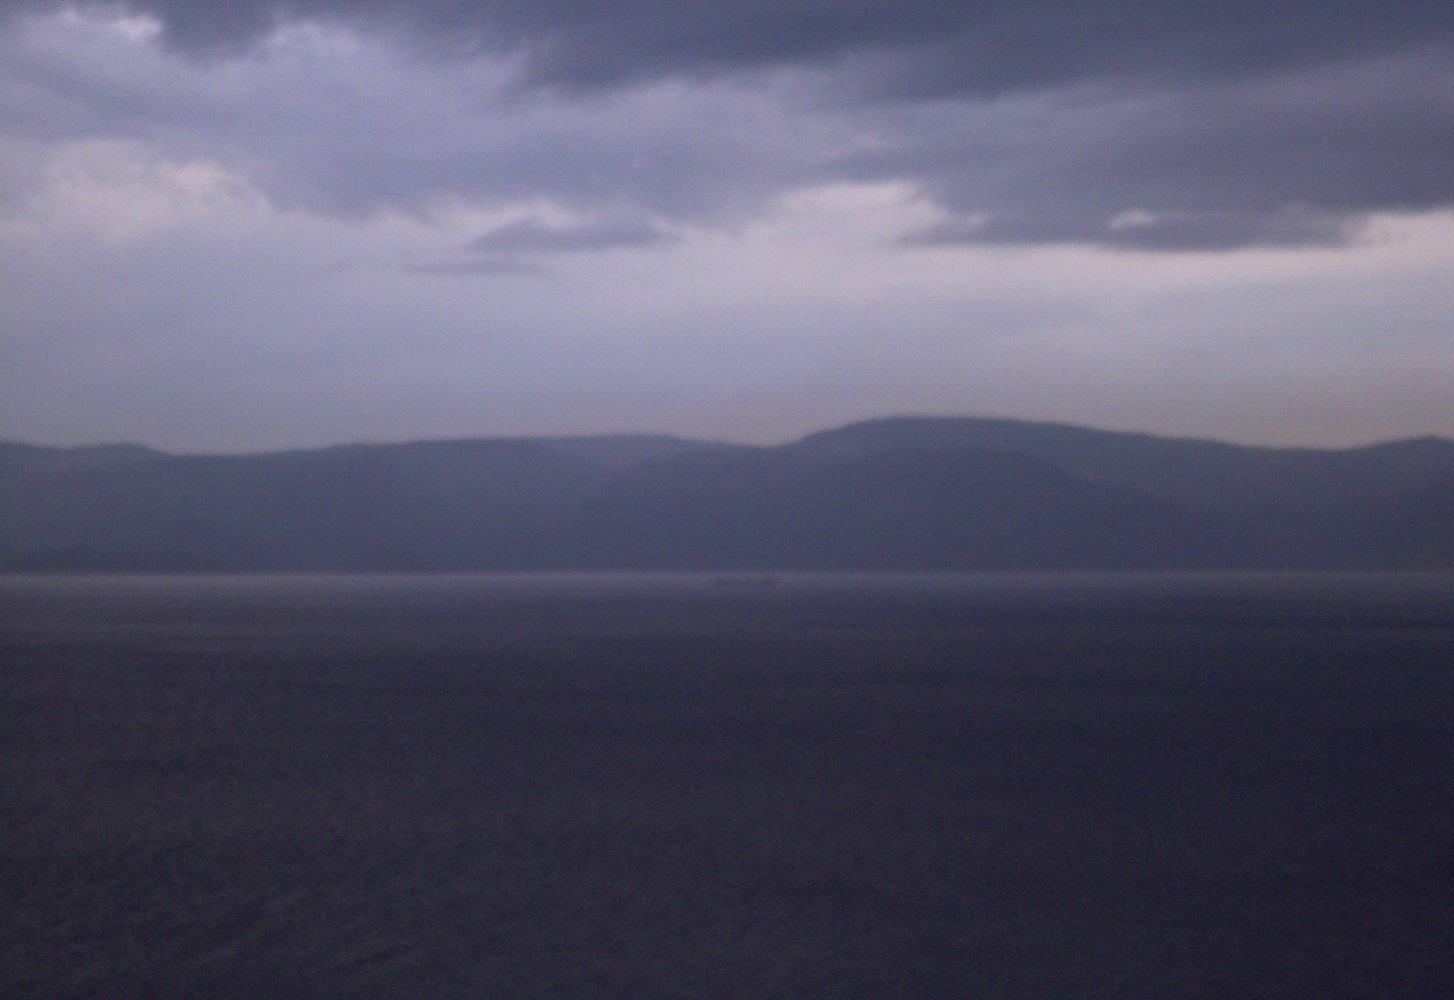 A seascape out of focus